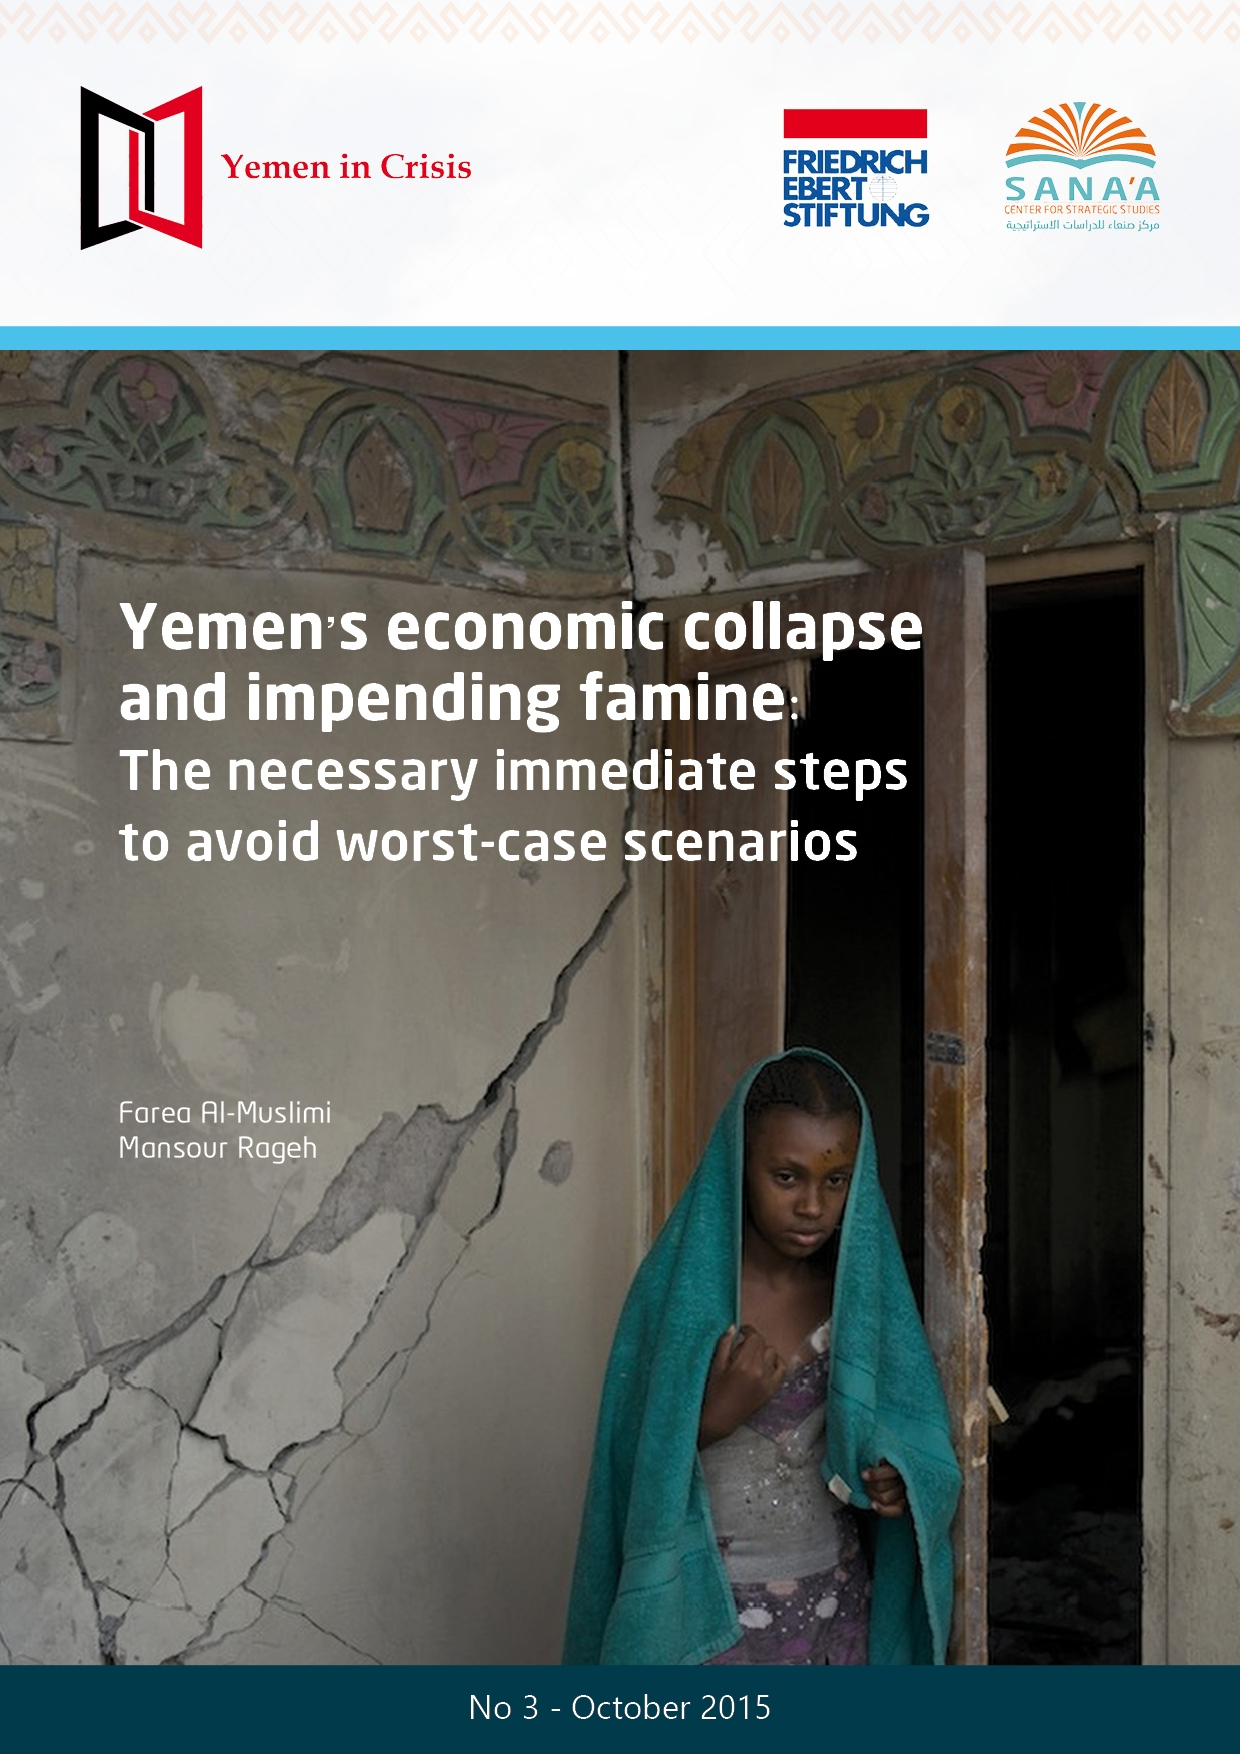 Yemen's economic collapse and impending famine: The necessary immediate steps to avoid worst-case scenarios